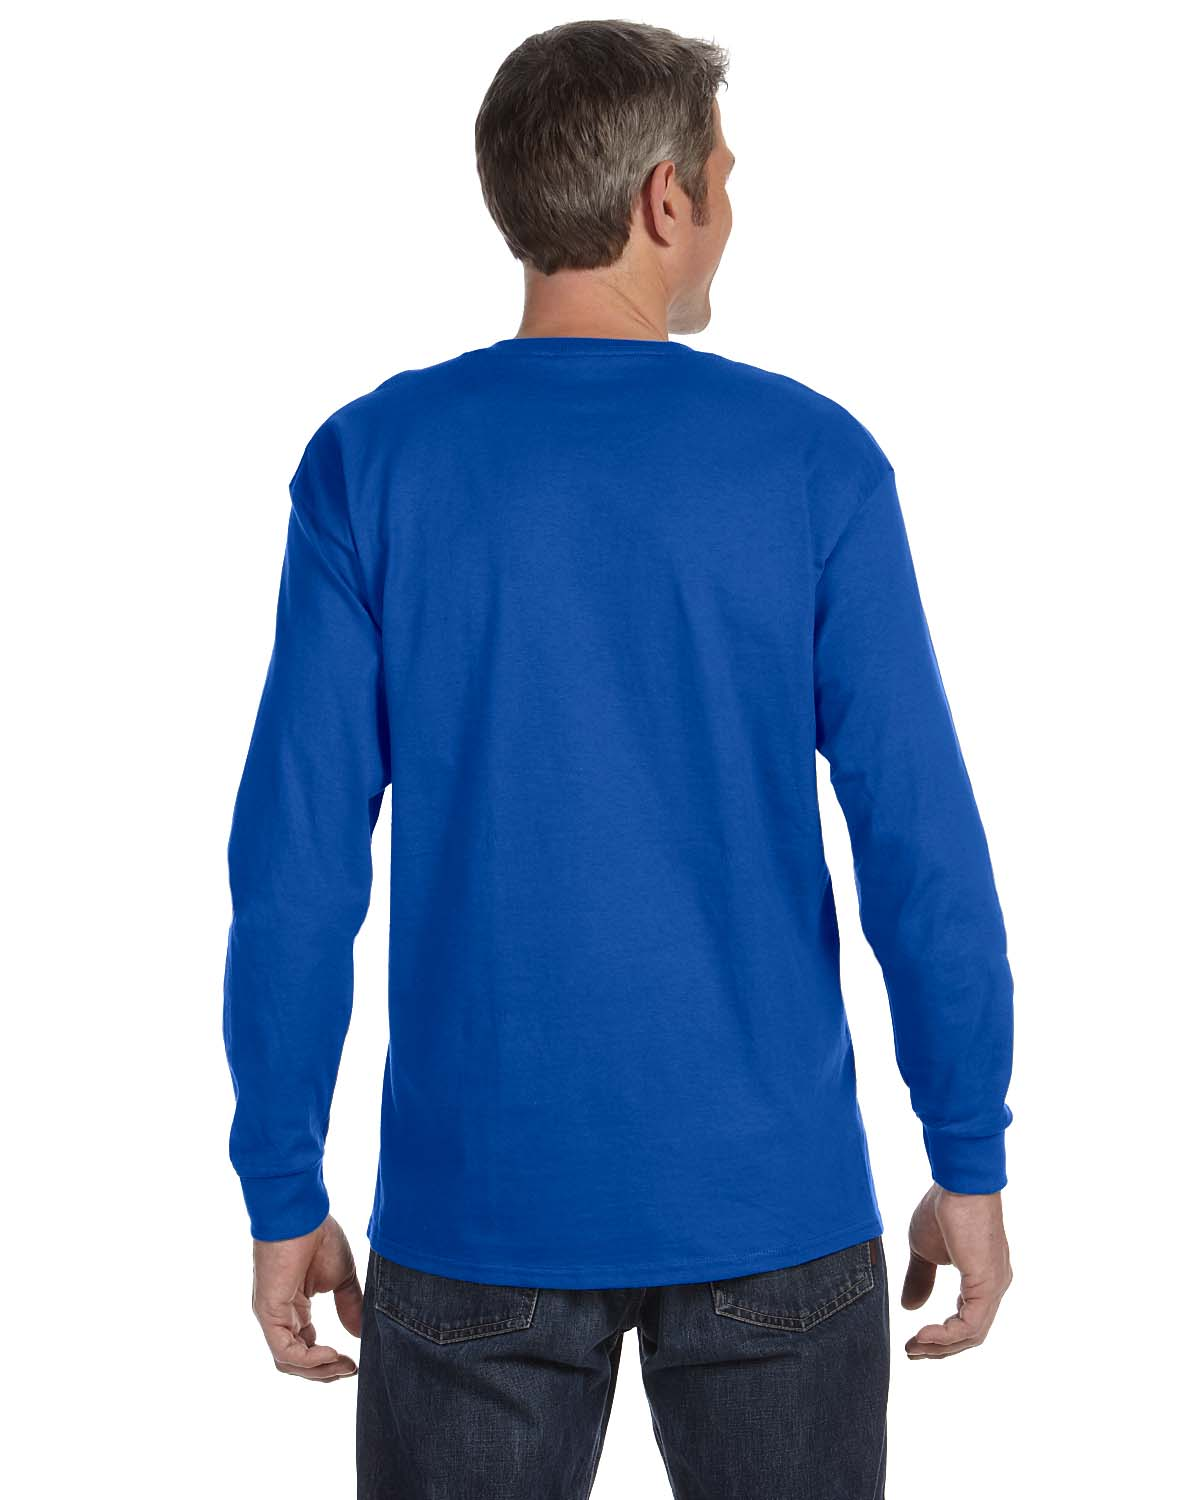 Gildan-Mens-T-Shirt-Long-Sleeve-Heavy-Cotton-5-3-oz-S-XL-R-G540-5400 thumbnail 44